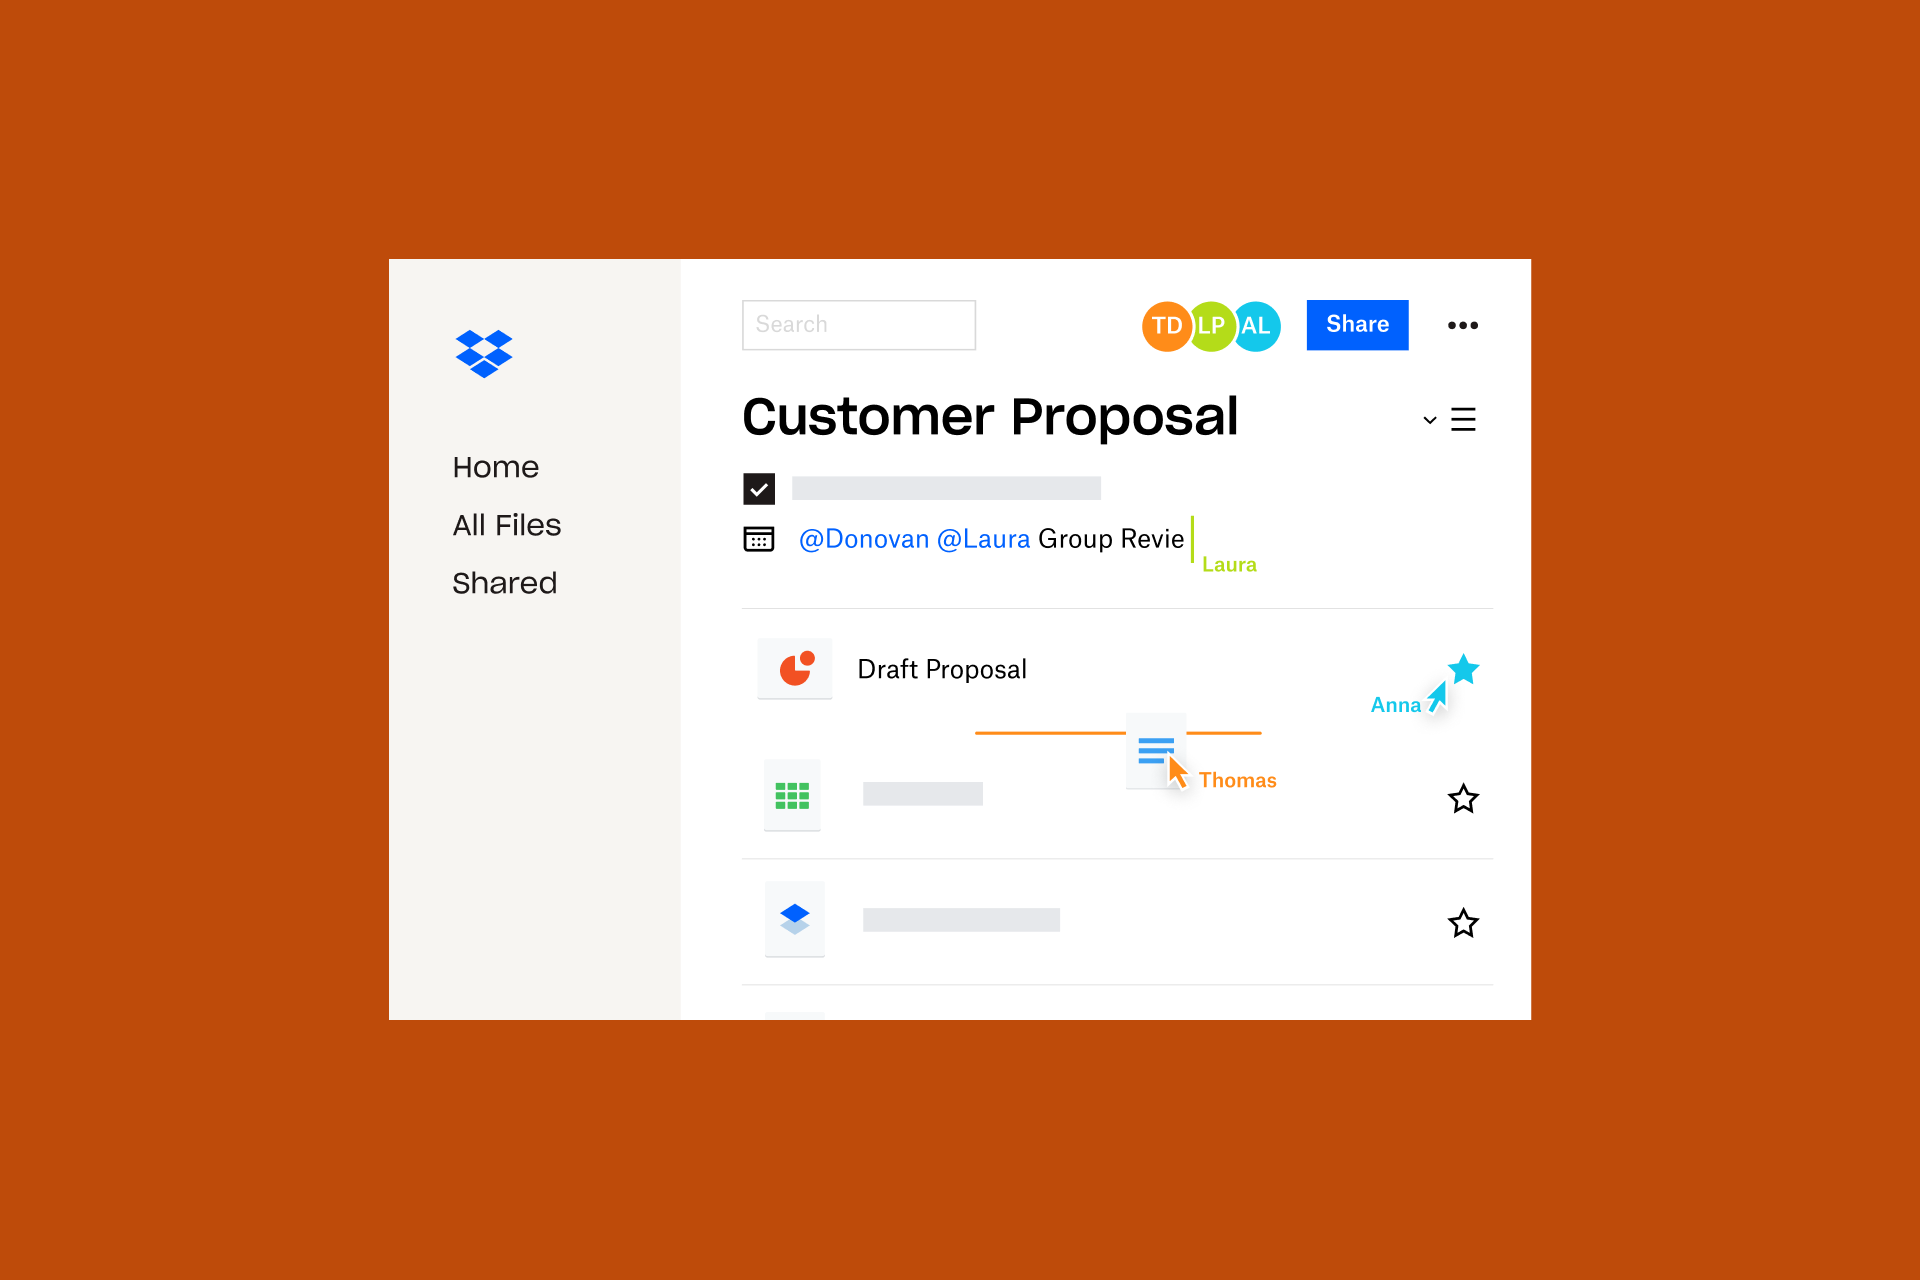 A preview of a customer proposal that has been created with Dropbox Spaces